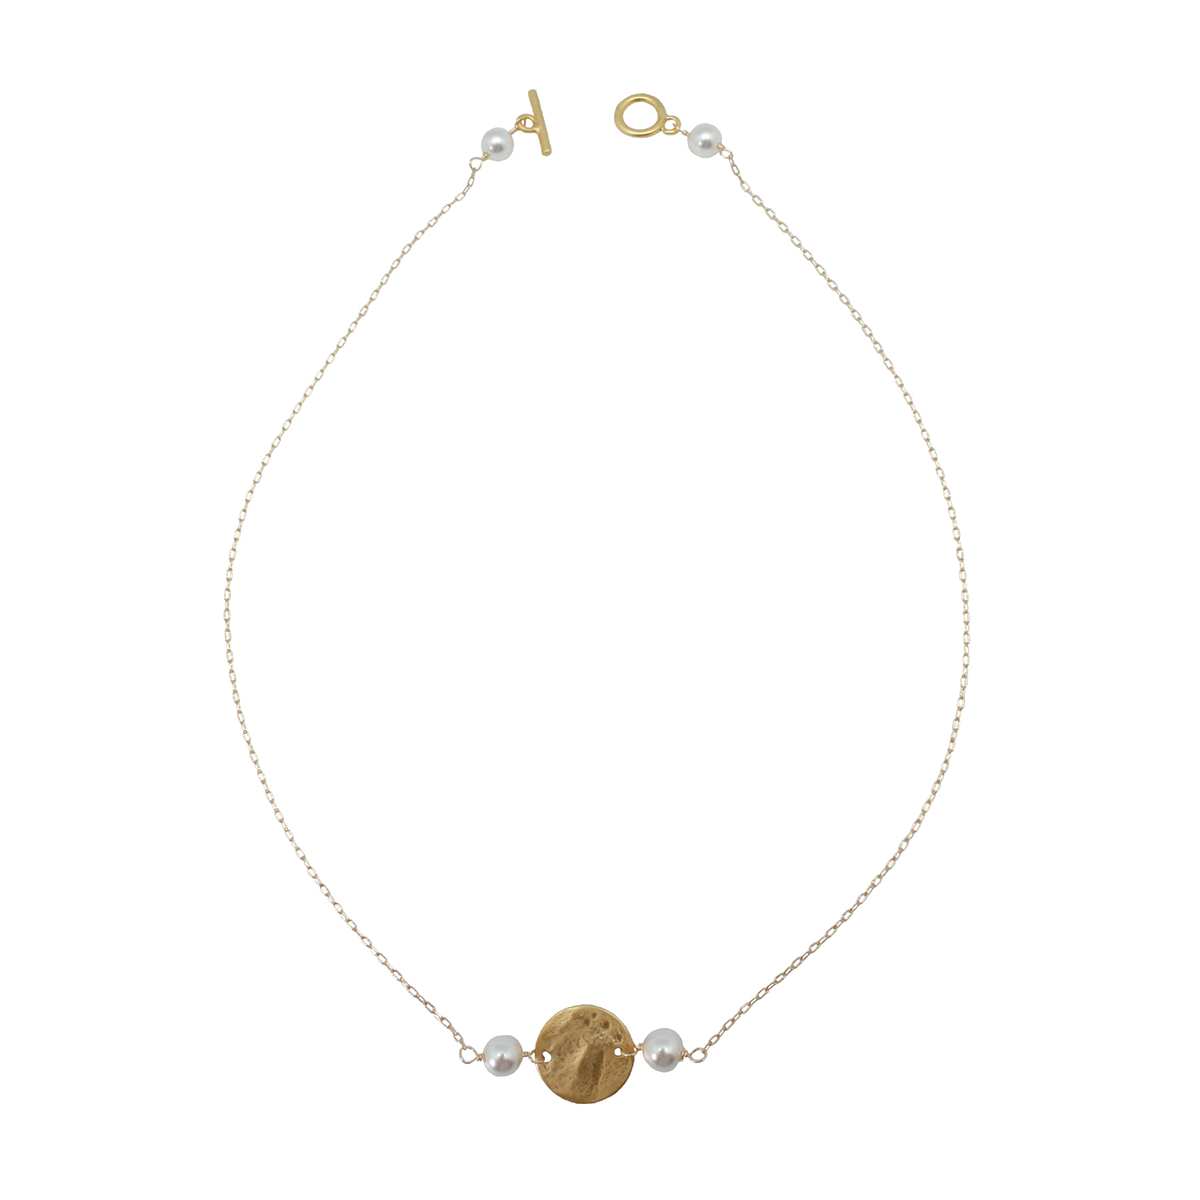 gold disc necklace with white pearls on white background